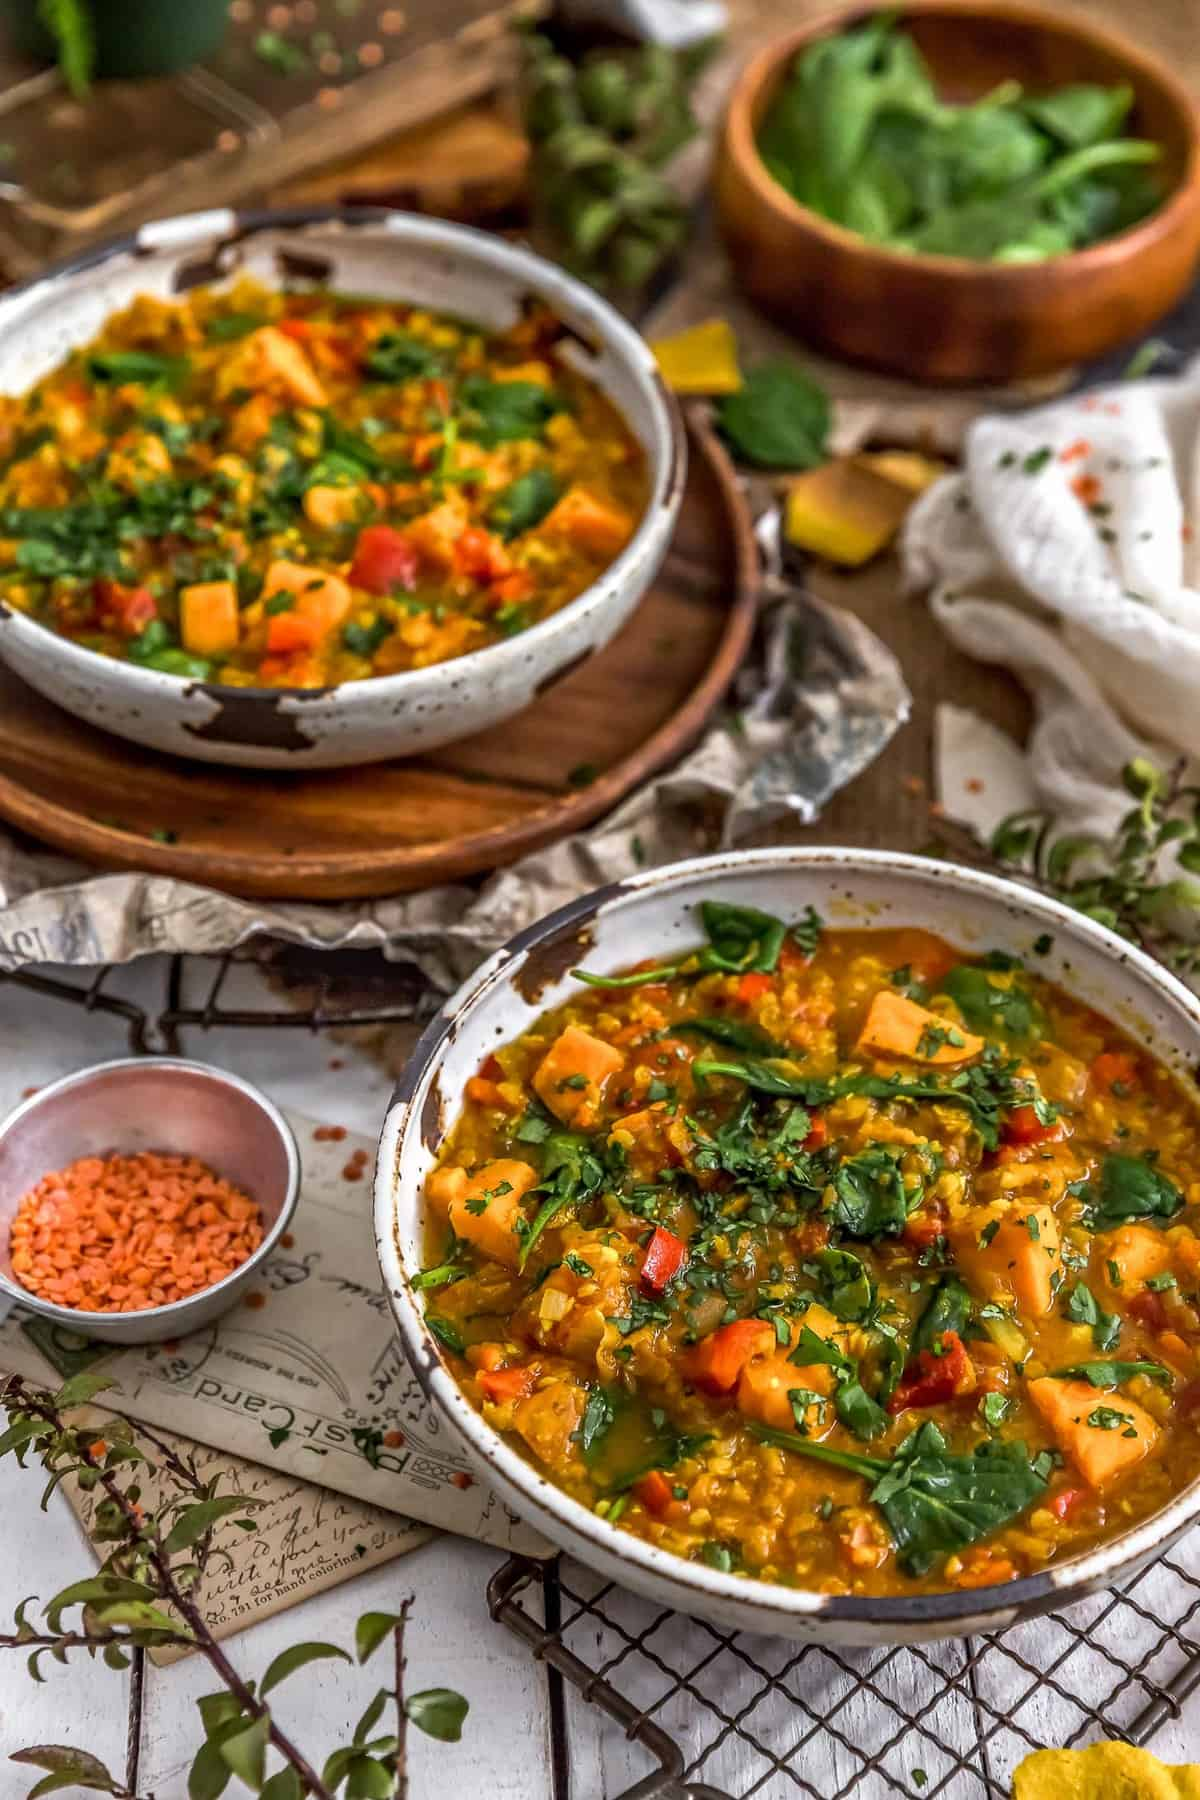 Bowls of Curried Red Lentil and Sweet Potato Stew